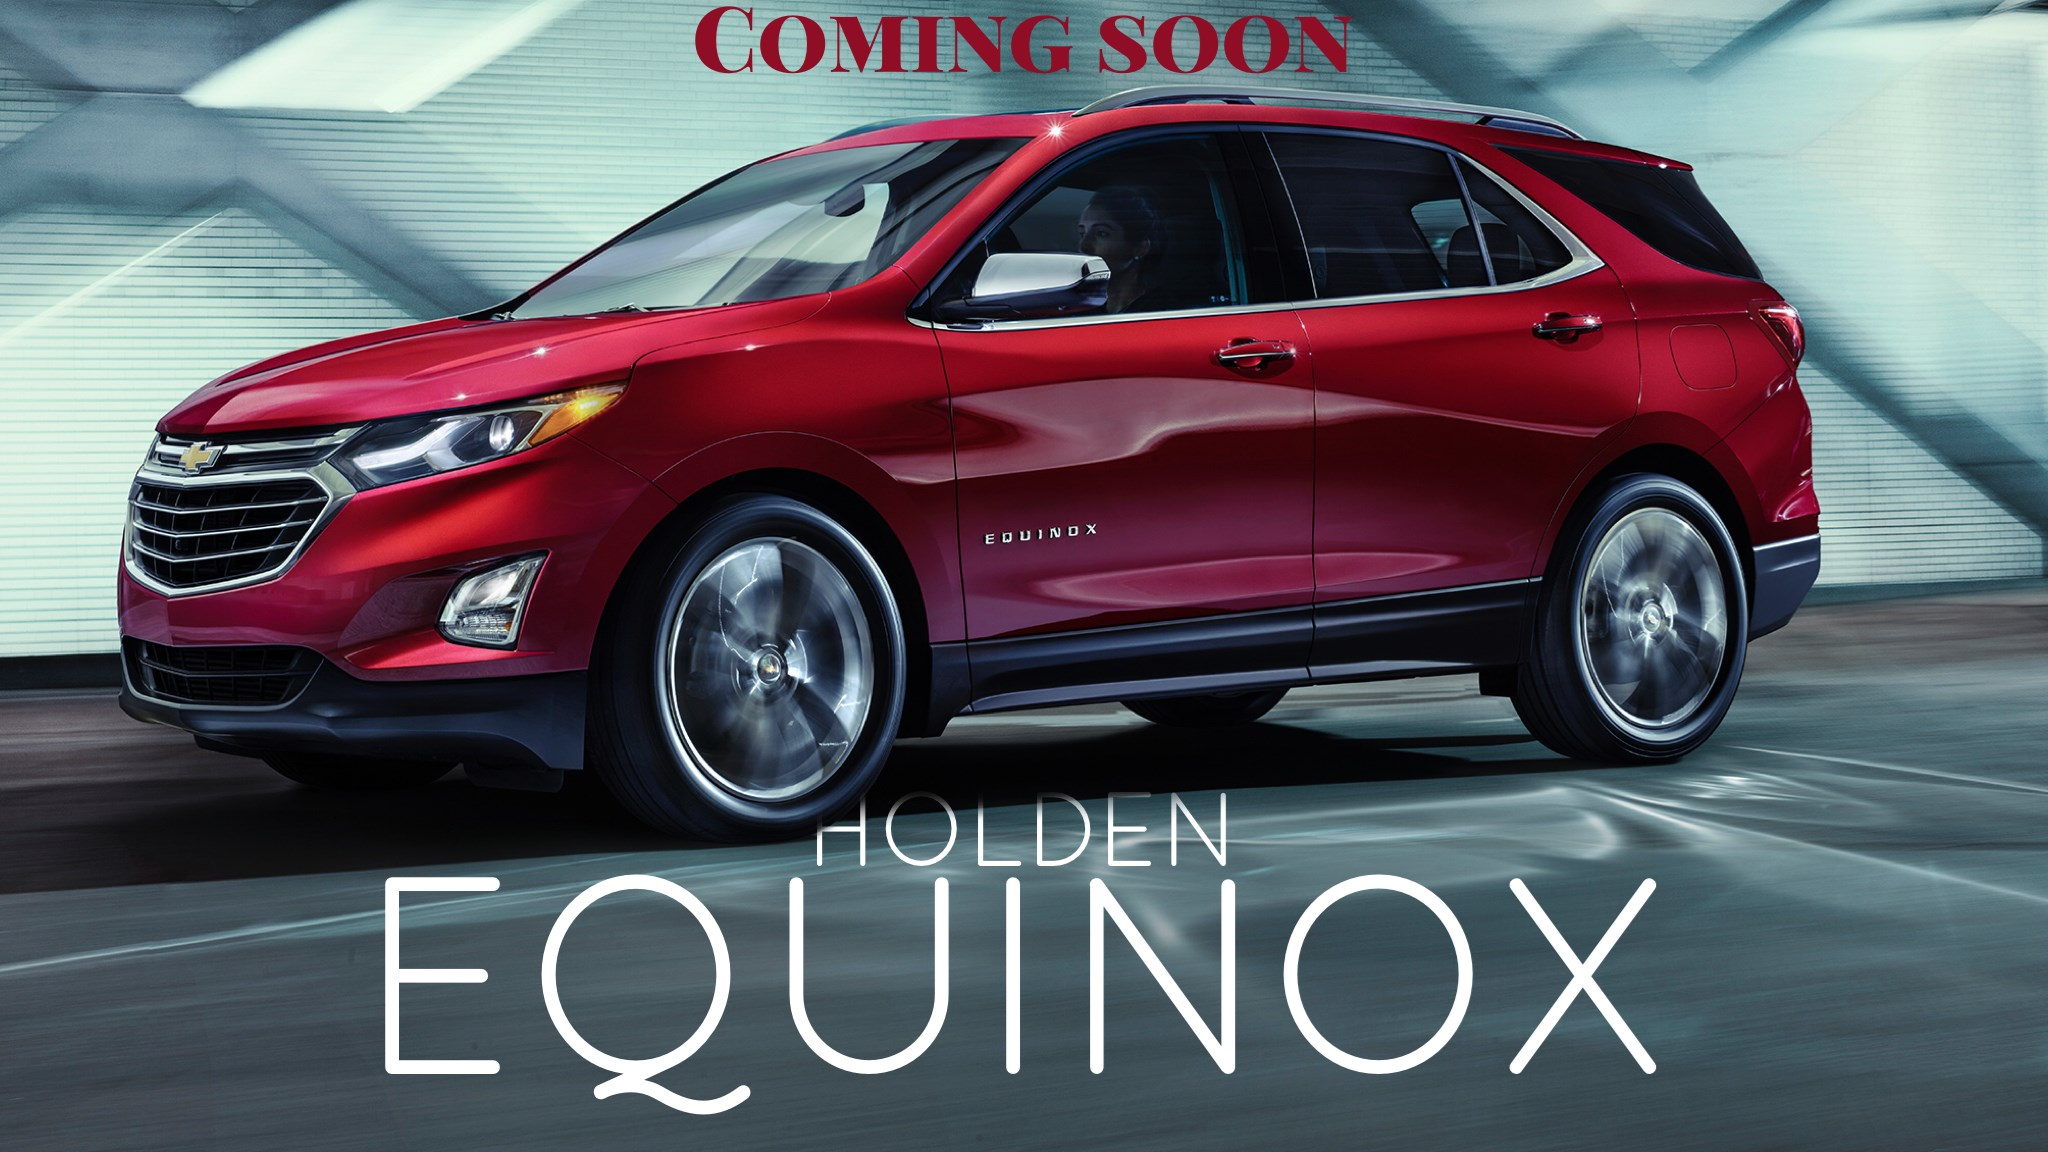 All-New 2018 Equinox Will Join Holden SUV Range